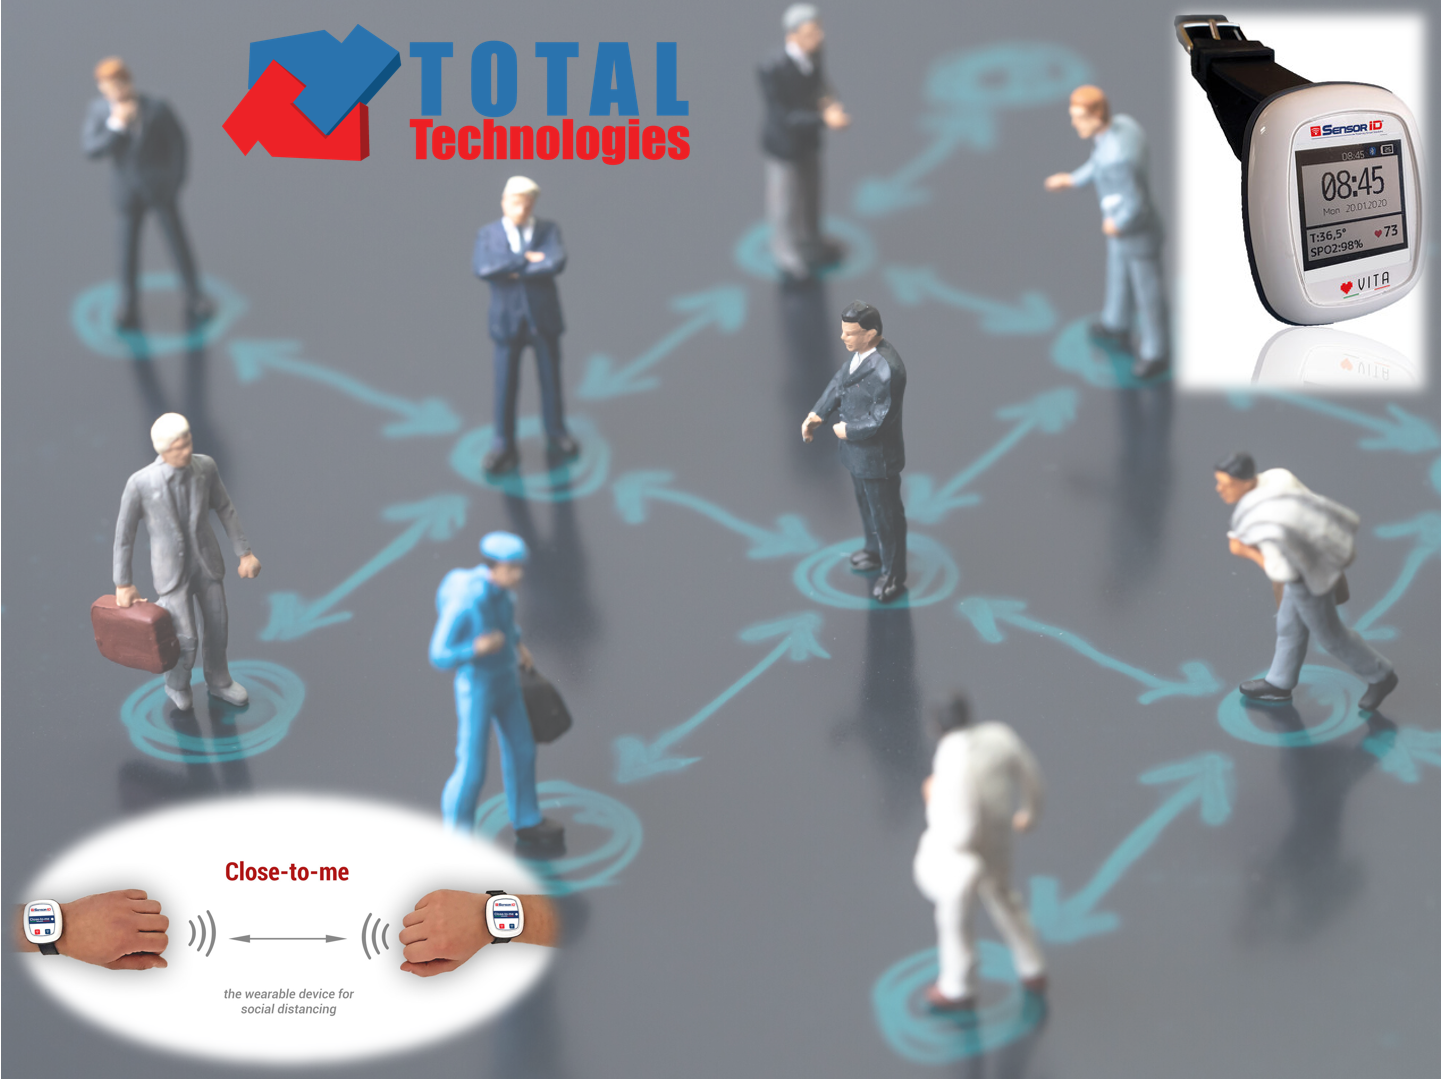 Total Technologies<sup>®</sup> supports social distancing and healthcare with the